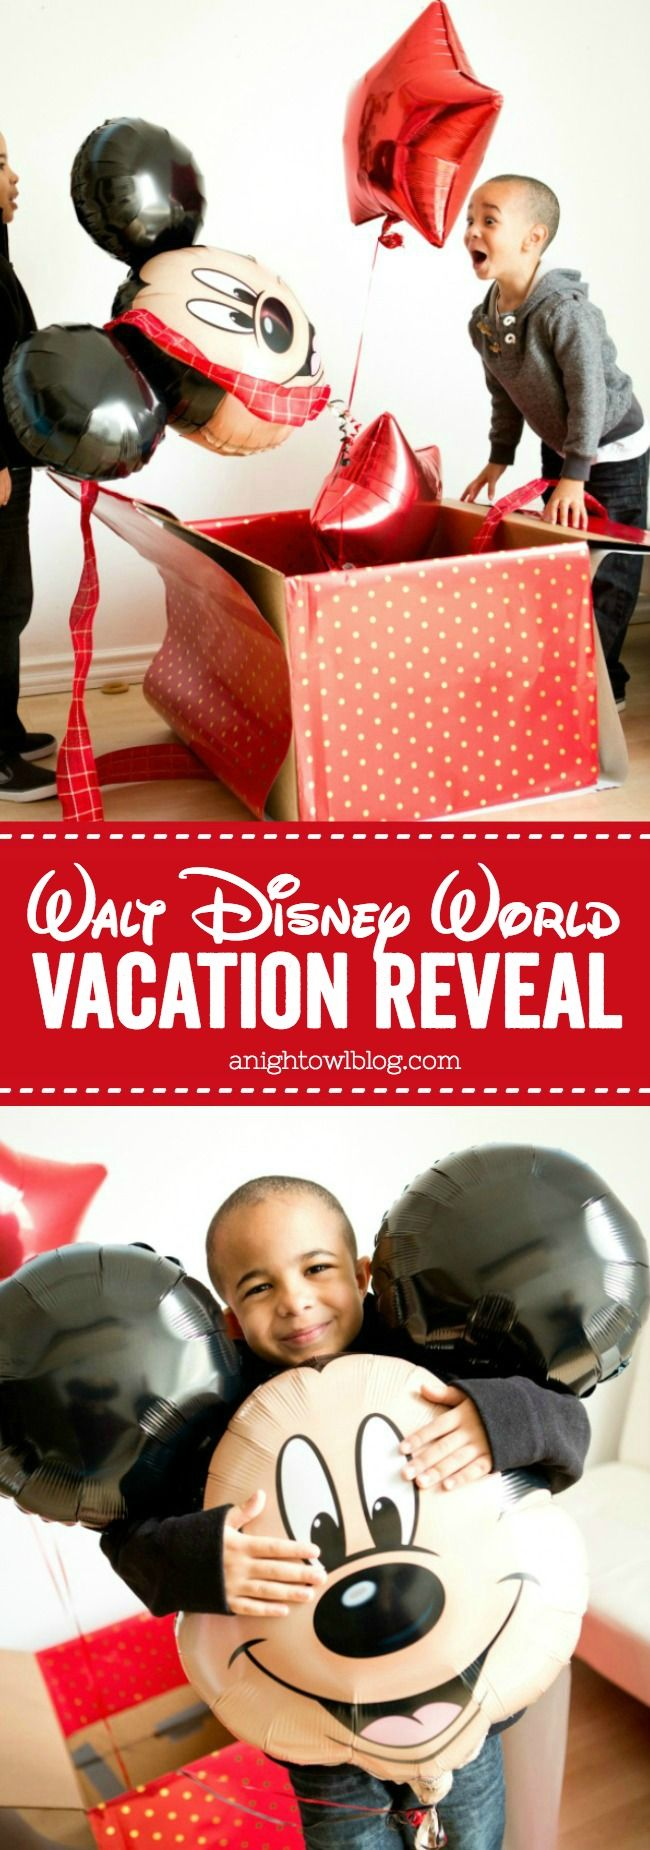 Such a fun idea for a Walt Disney World Vacation Reveal with free downloadable tag! #WaltDisneyWorld #ad